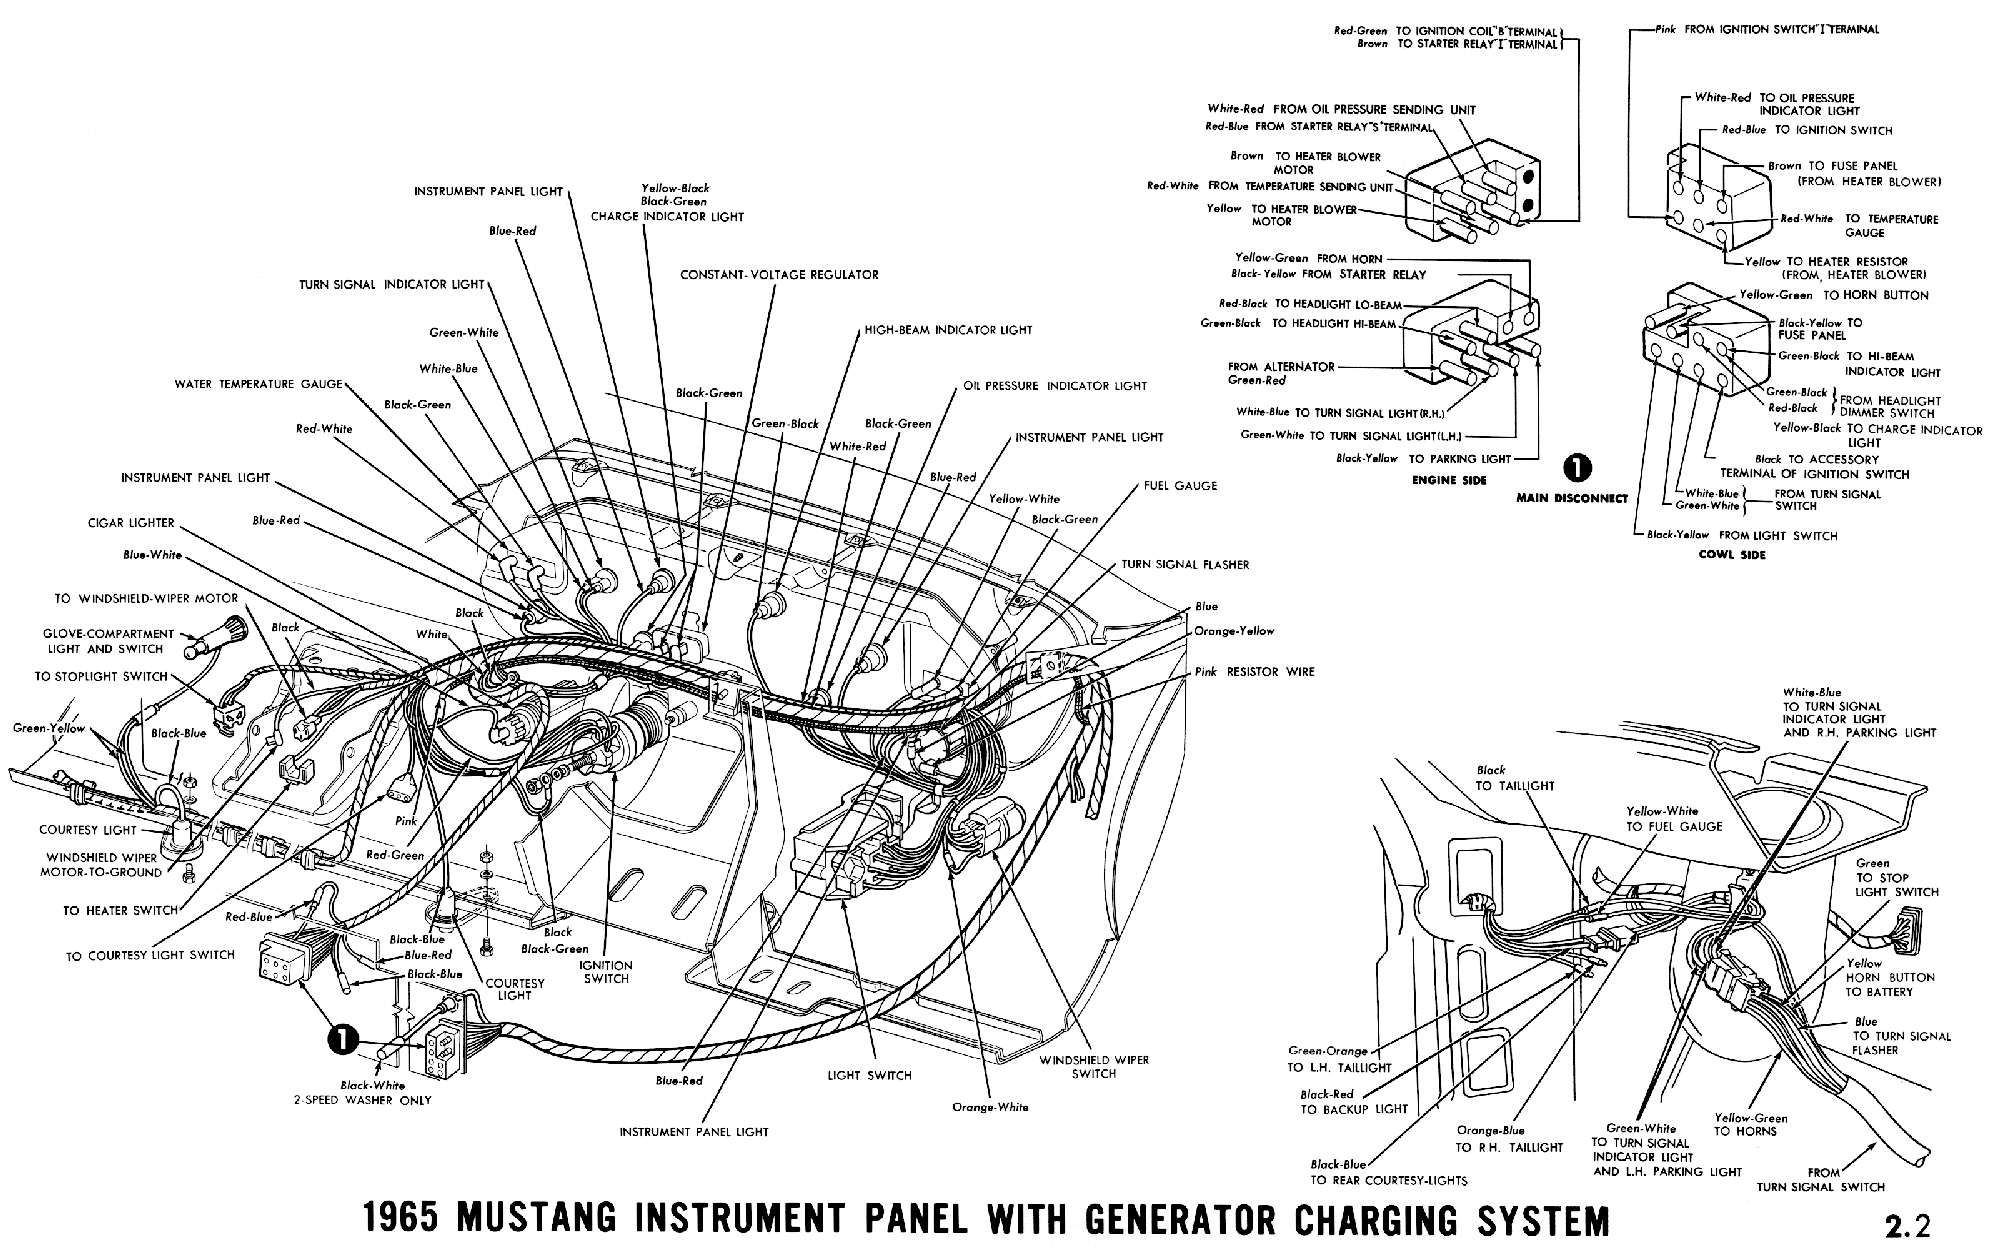 medium resolution of 1965 mustang instrument panel with alternator charging system pictorial instrument cluster connections wiper switch headlamp switch ignition switch and